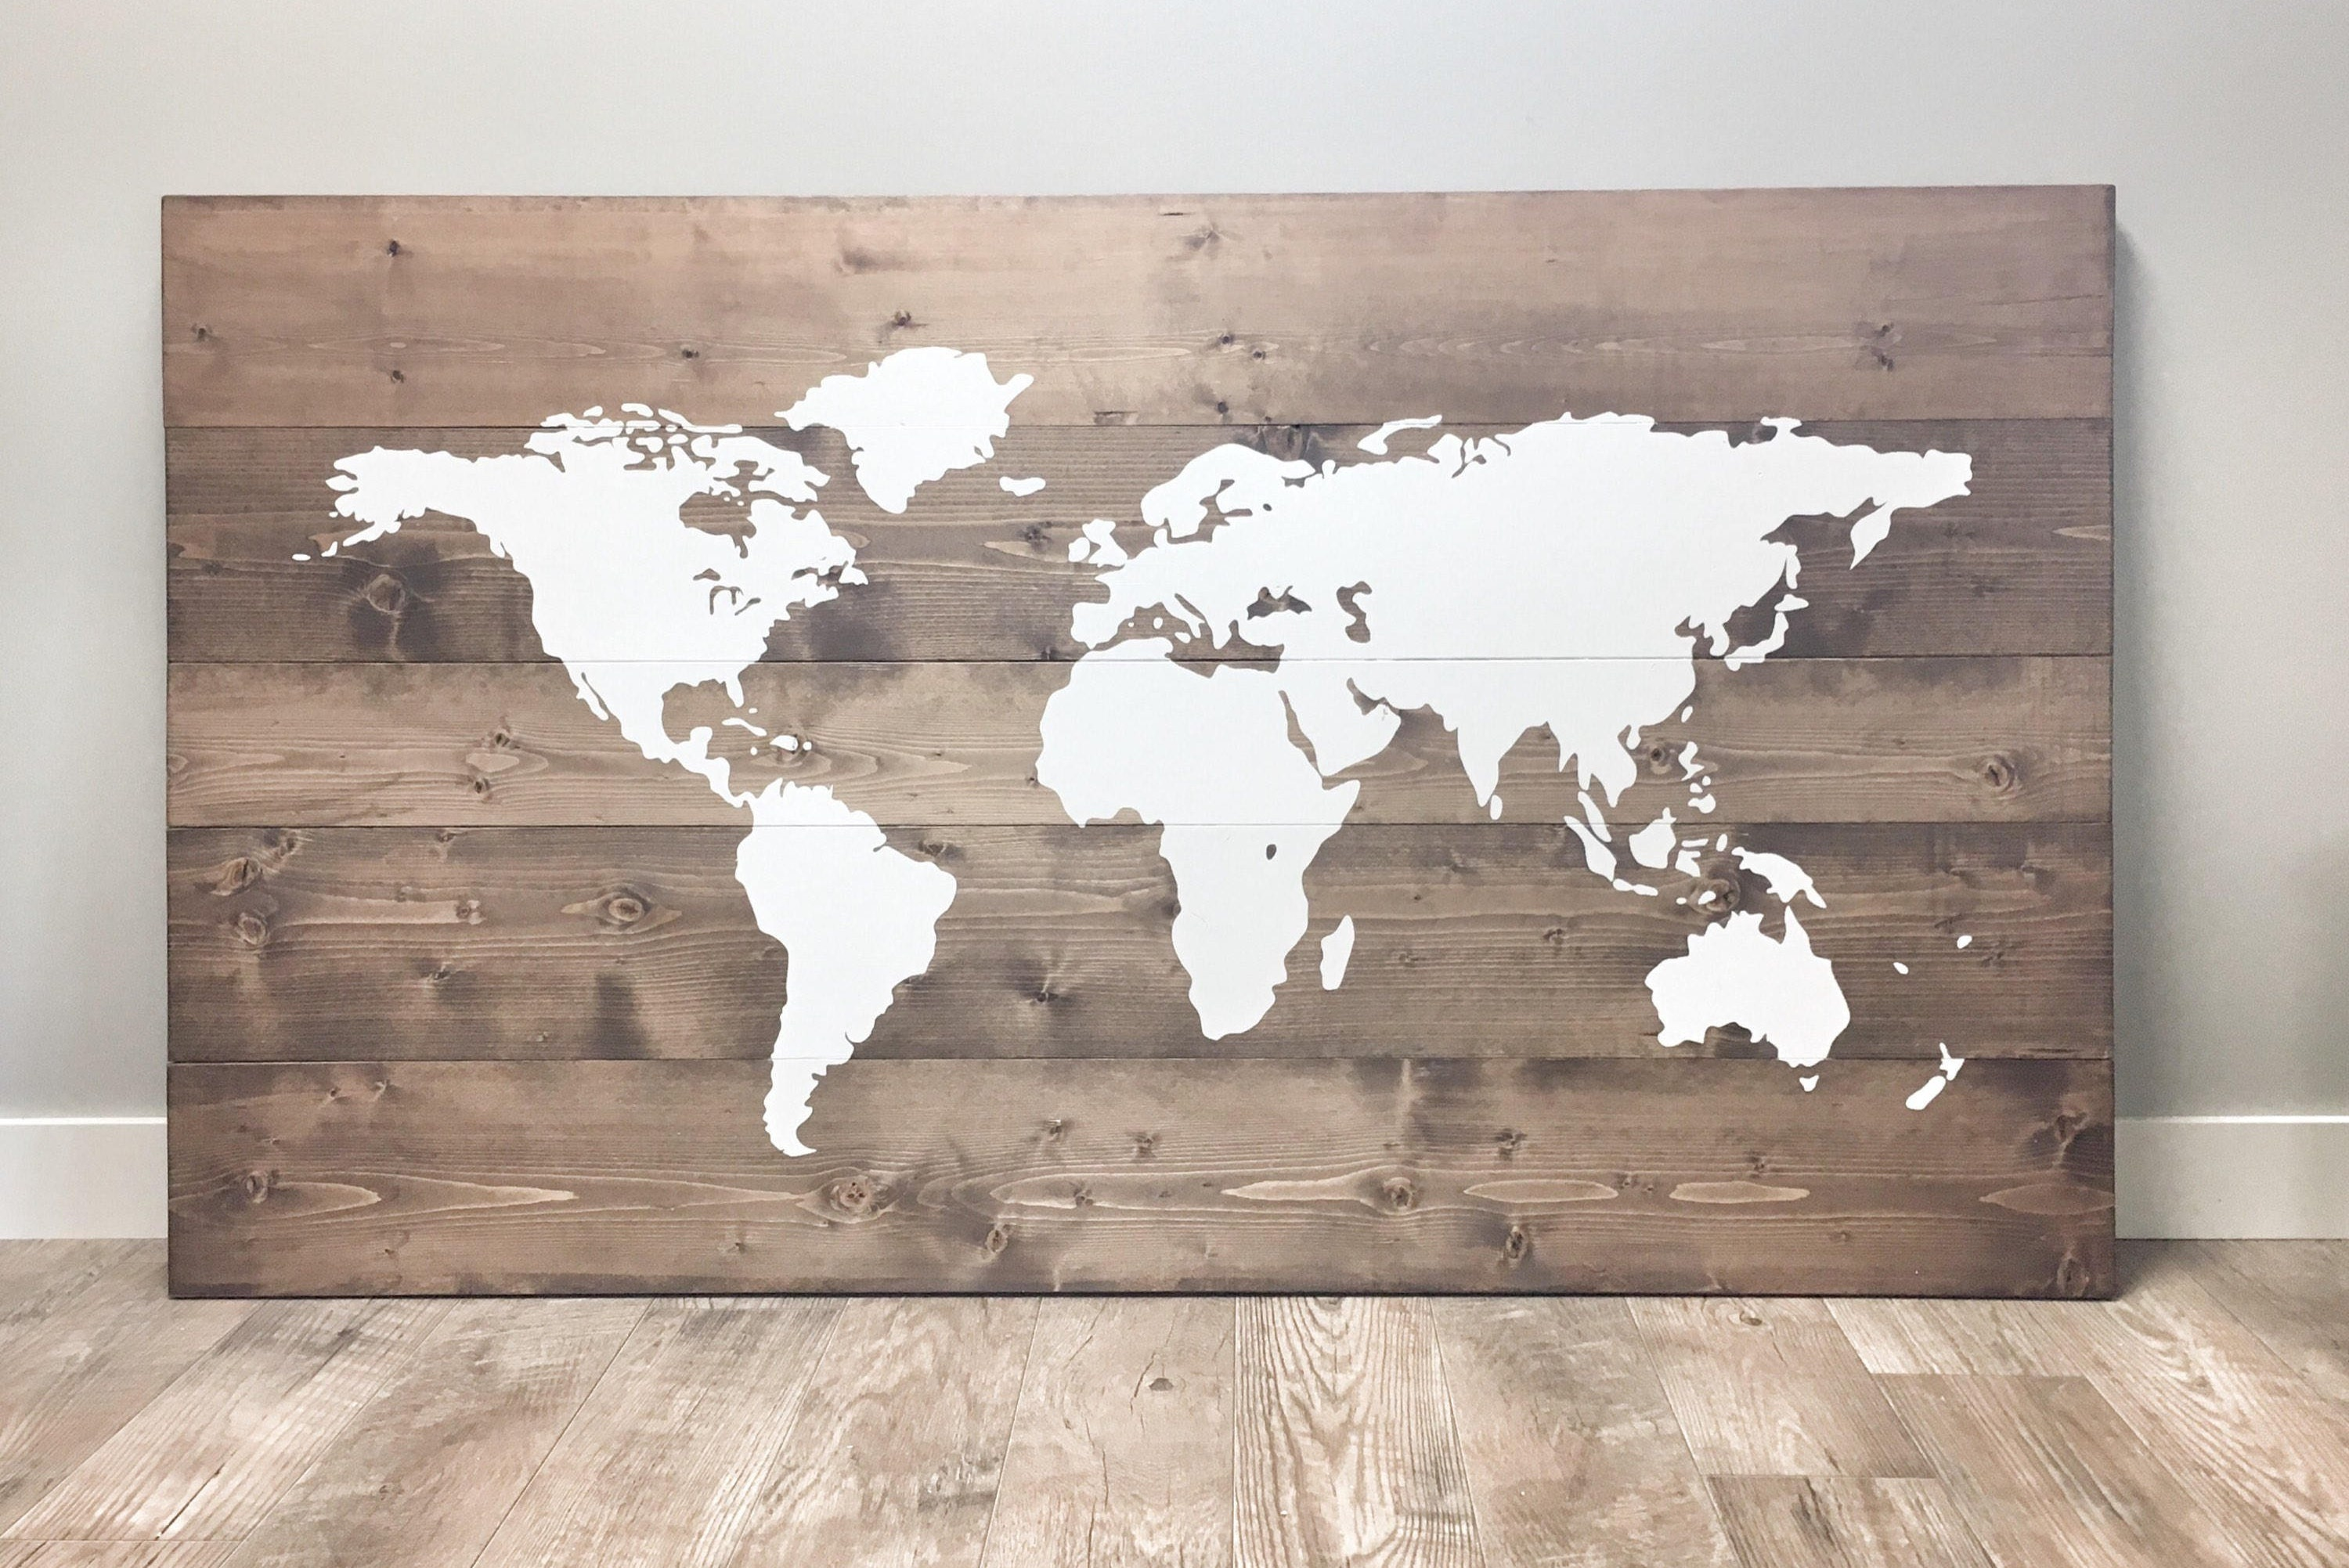 Huge Rustic World Map Made Of Wood For Traveller Rustic Wall Art